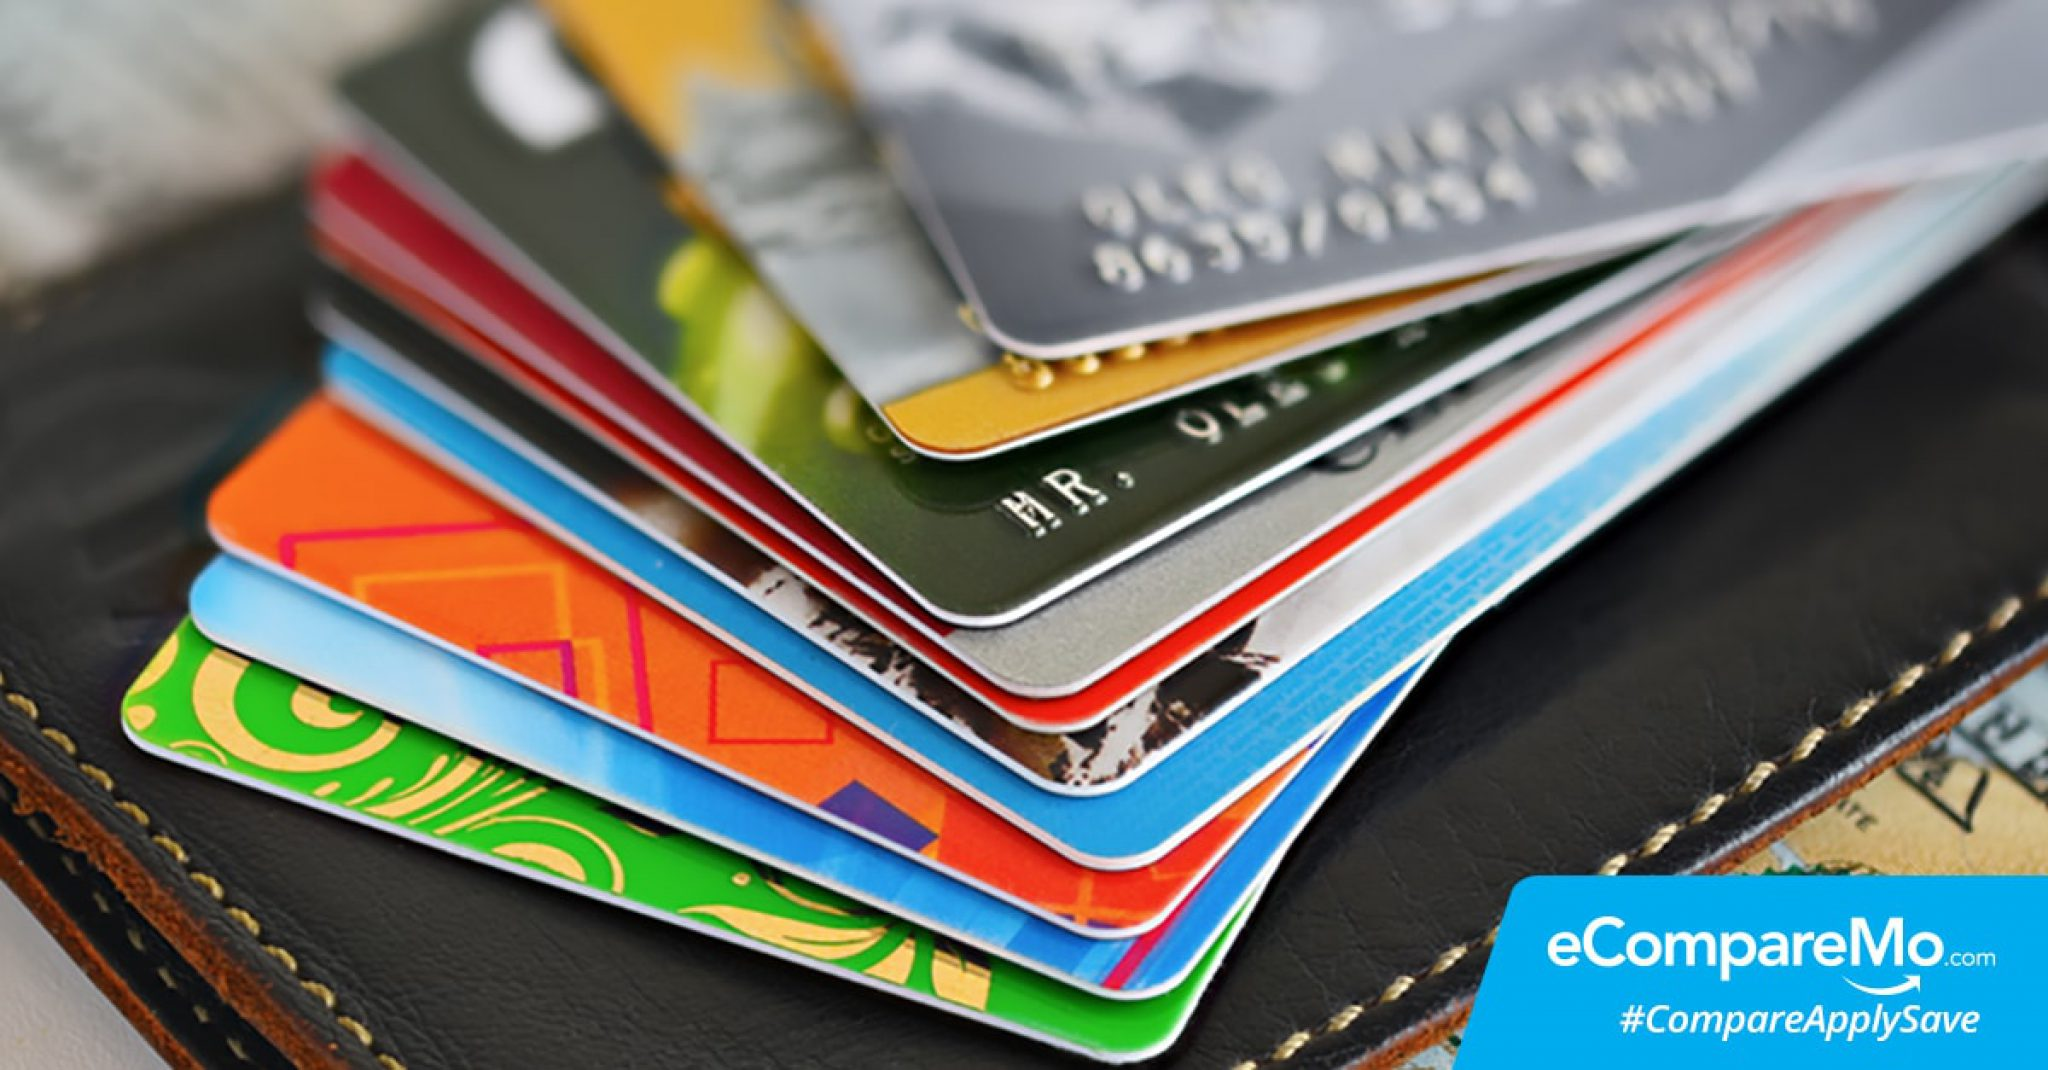 The Best Credit Card Promos For July 2017 - eCompareMo